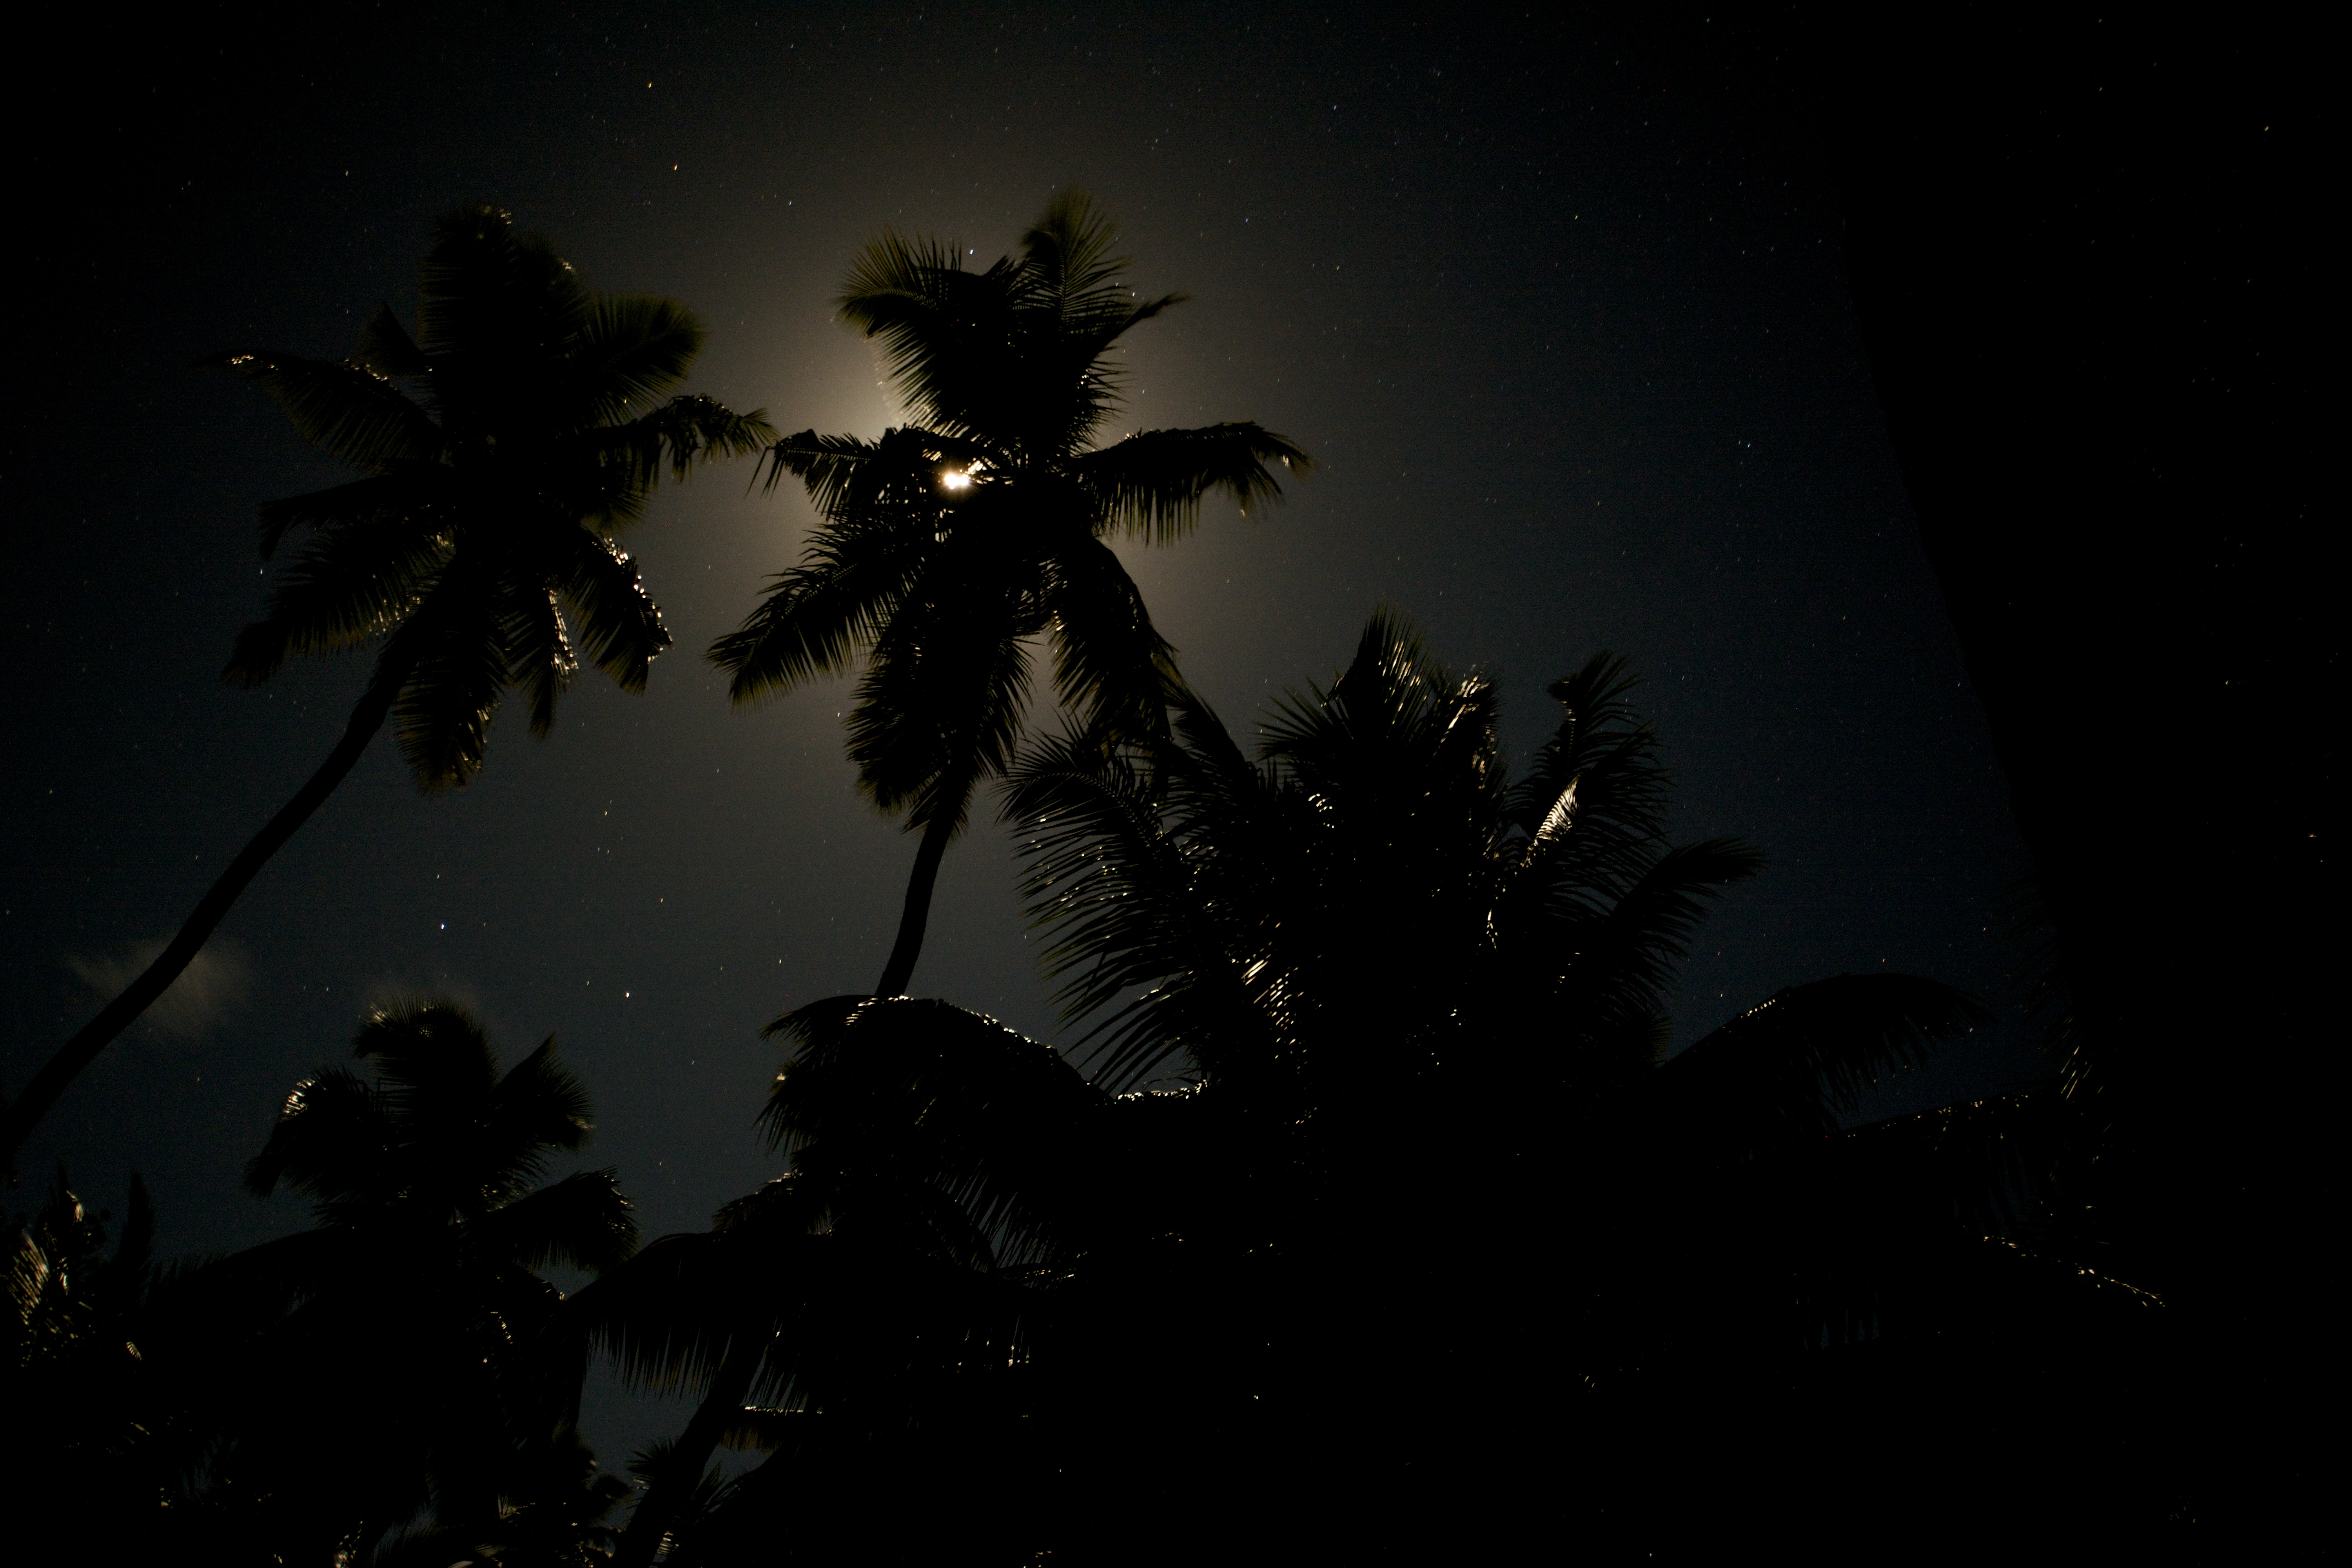 Full moon behind coconut trees at St Joseph Atoll. Photo by Chris Boyes |© Save Our Seas Foundation